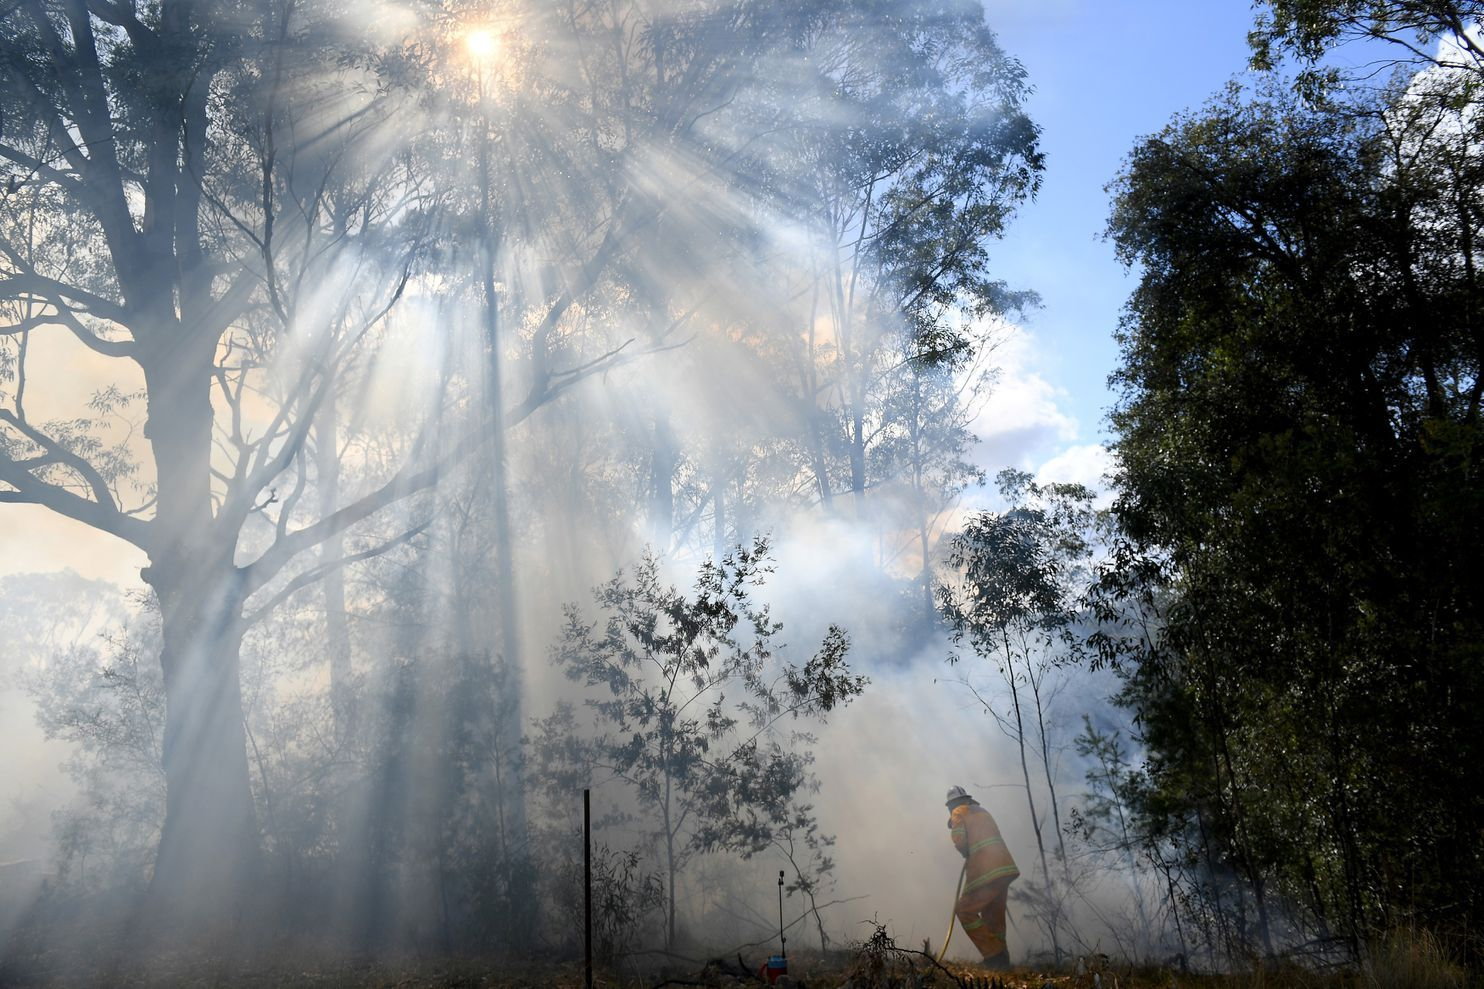 As Australia bush fires rage, country offers lessons for